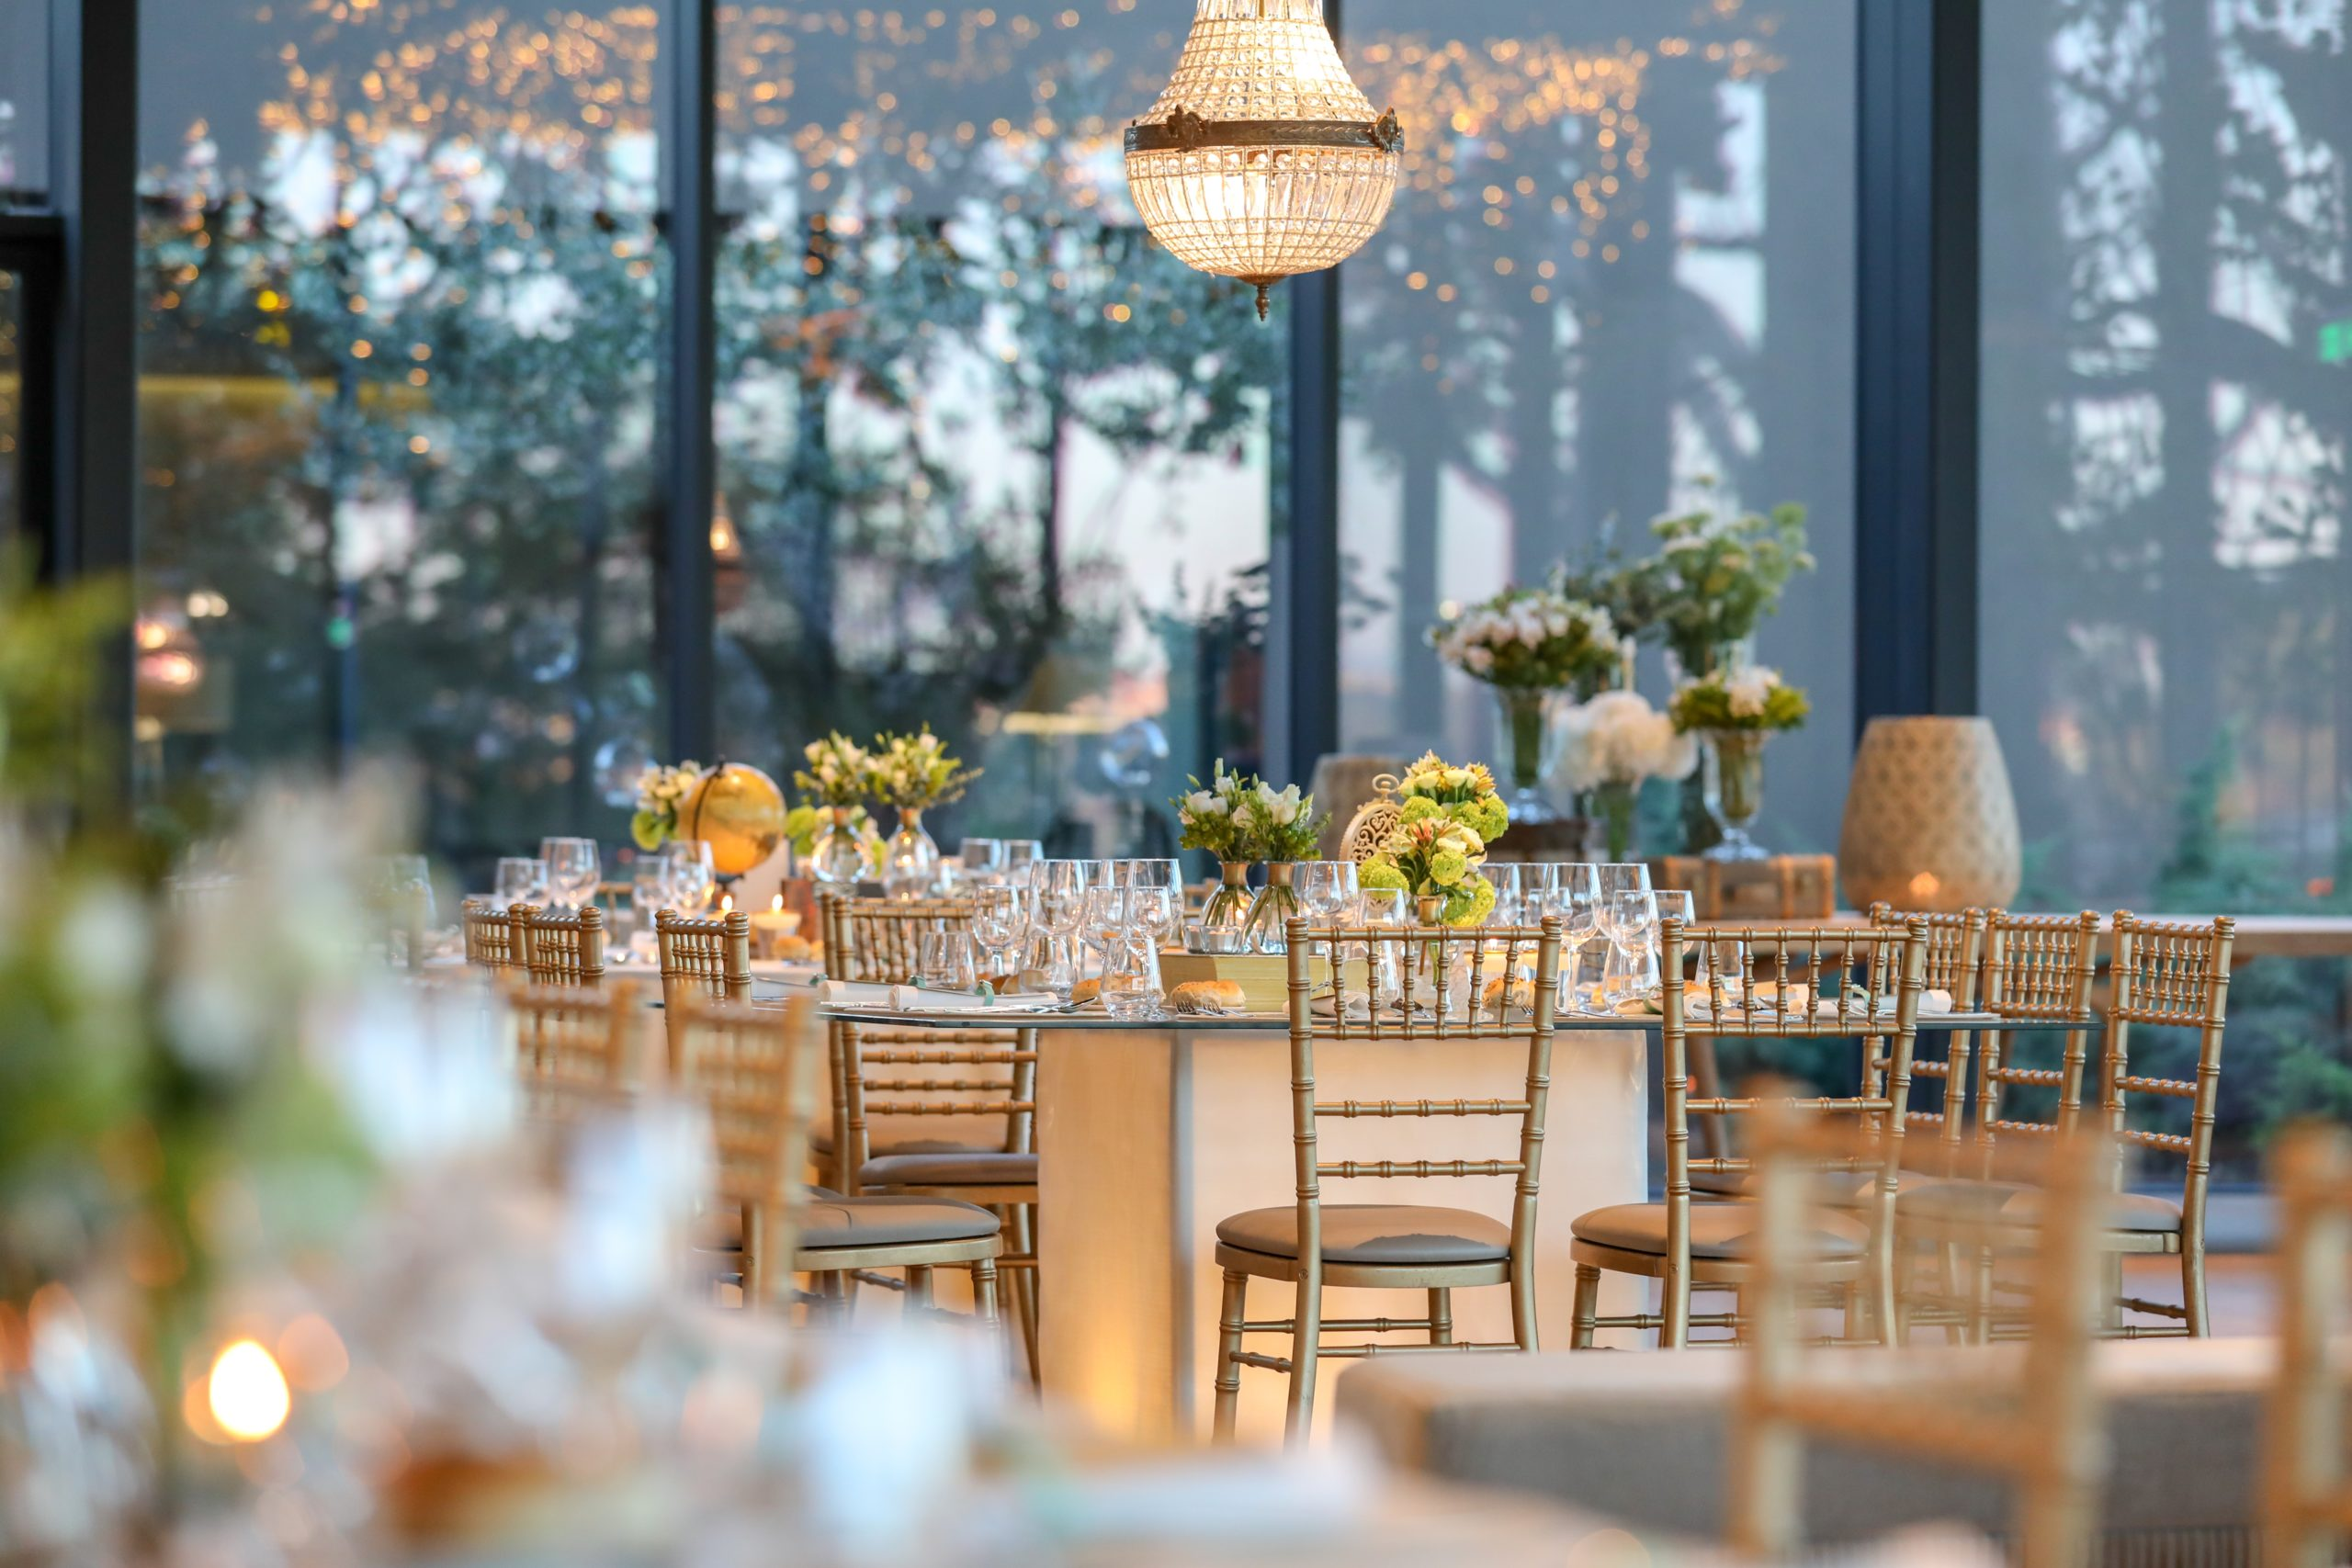 Decorated wedding hall with a beautiful table setting with floral decorations